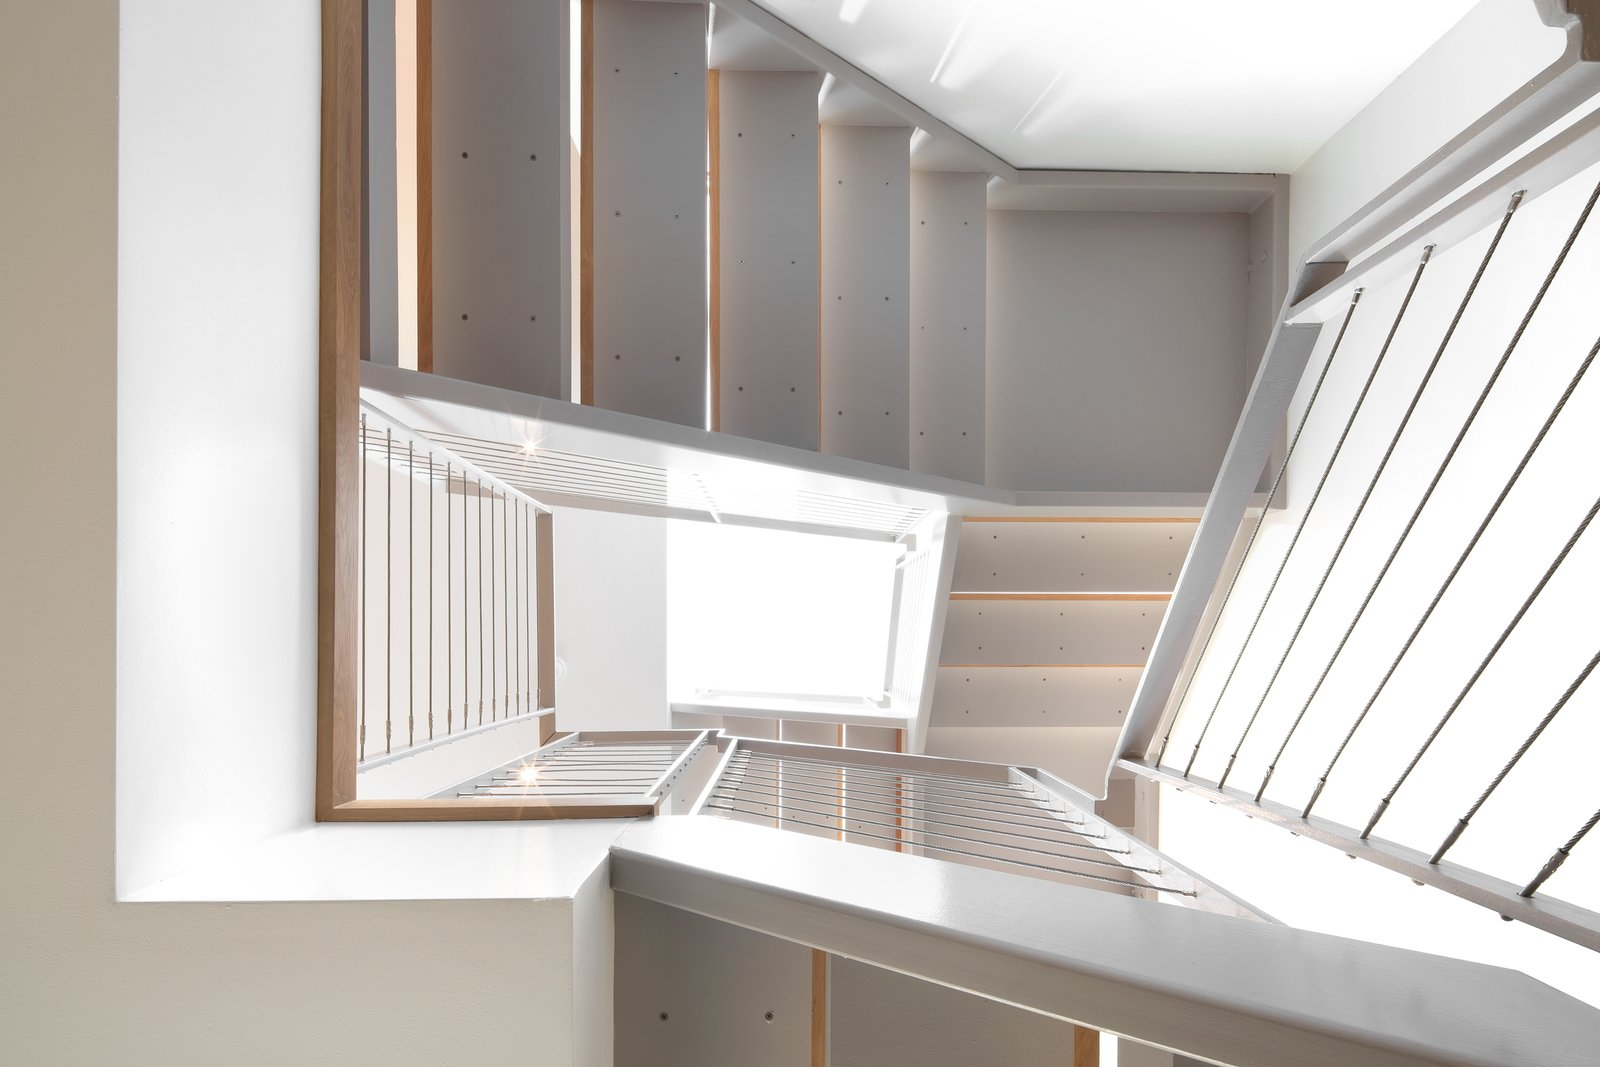 Main Stair Tagged: Staircase and Metal Railing.  27th Street - Noe Valley by patrick perez/designpad architecture